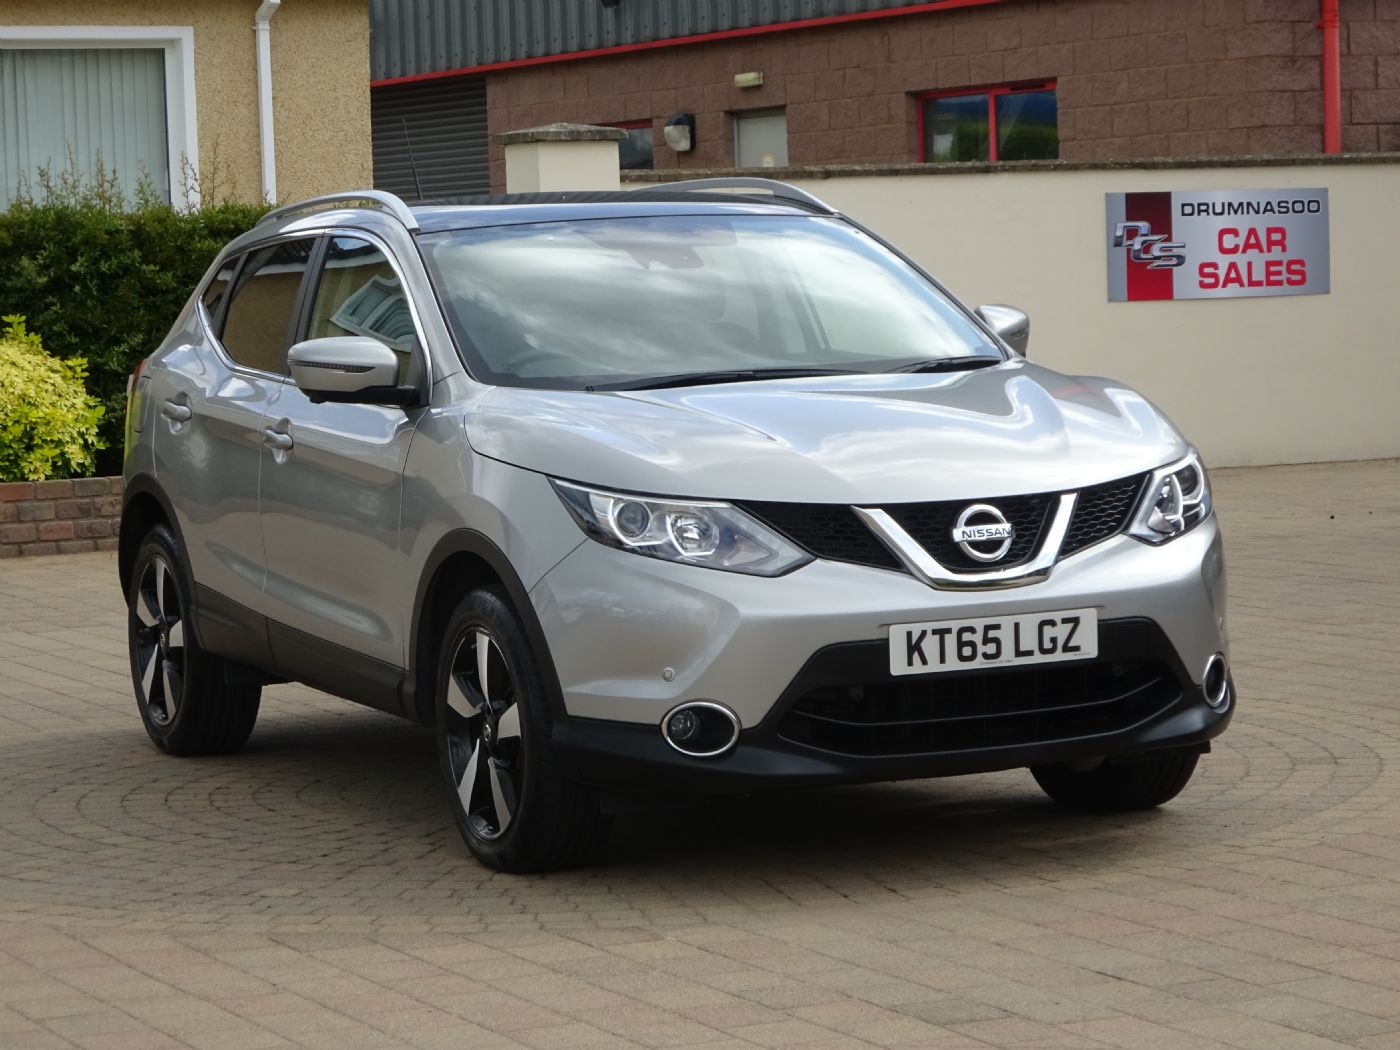 Nissan Qashqai N-TEC + 1.5 Dci Sat nav / Rear camera / Sunroof